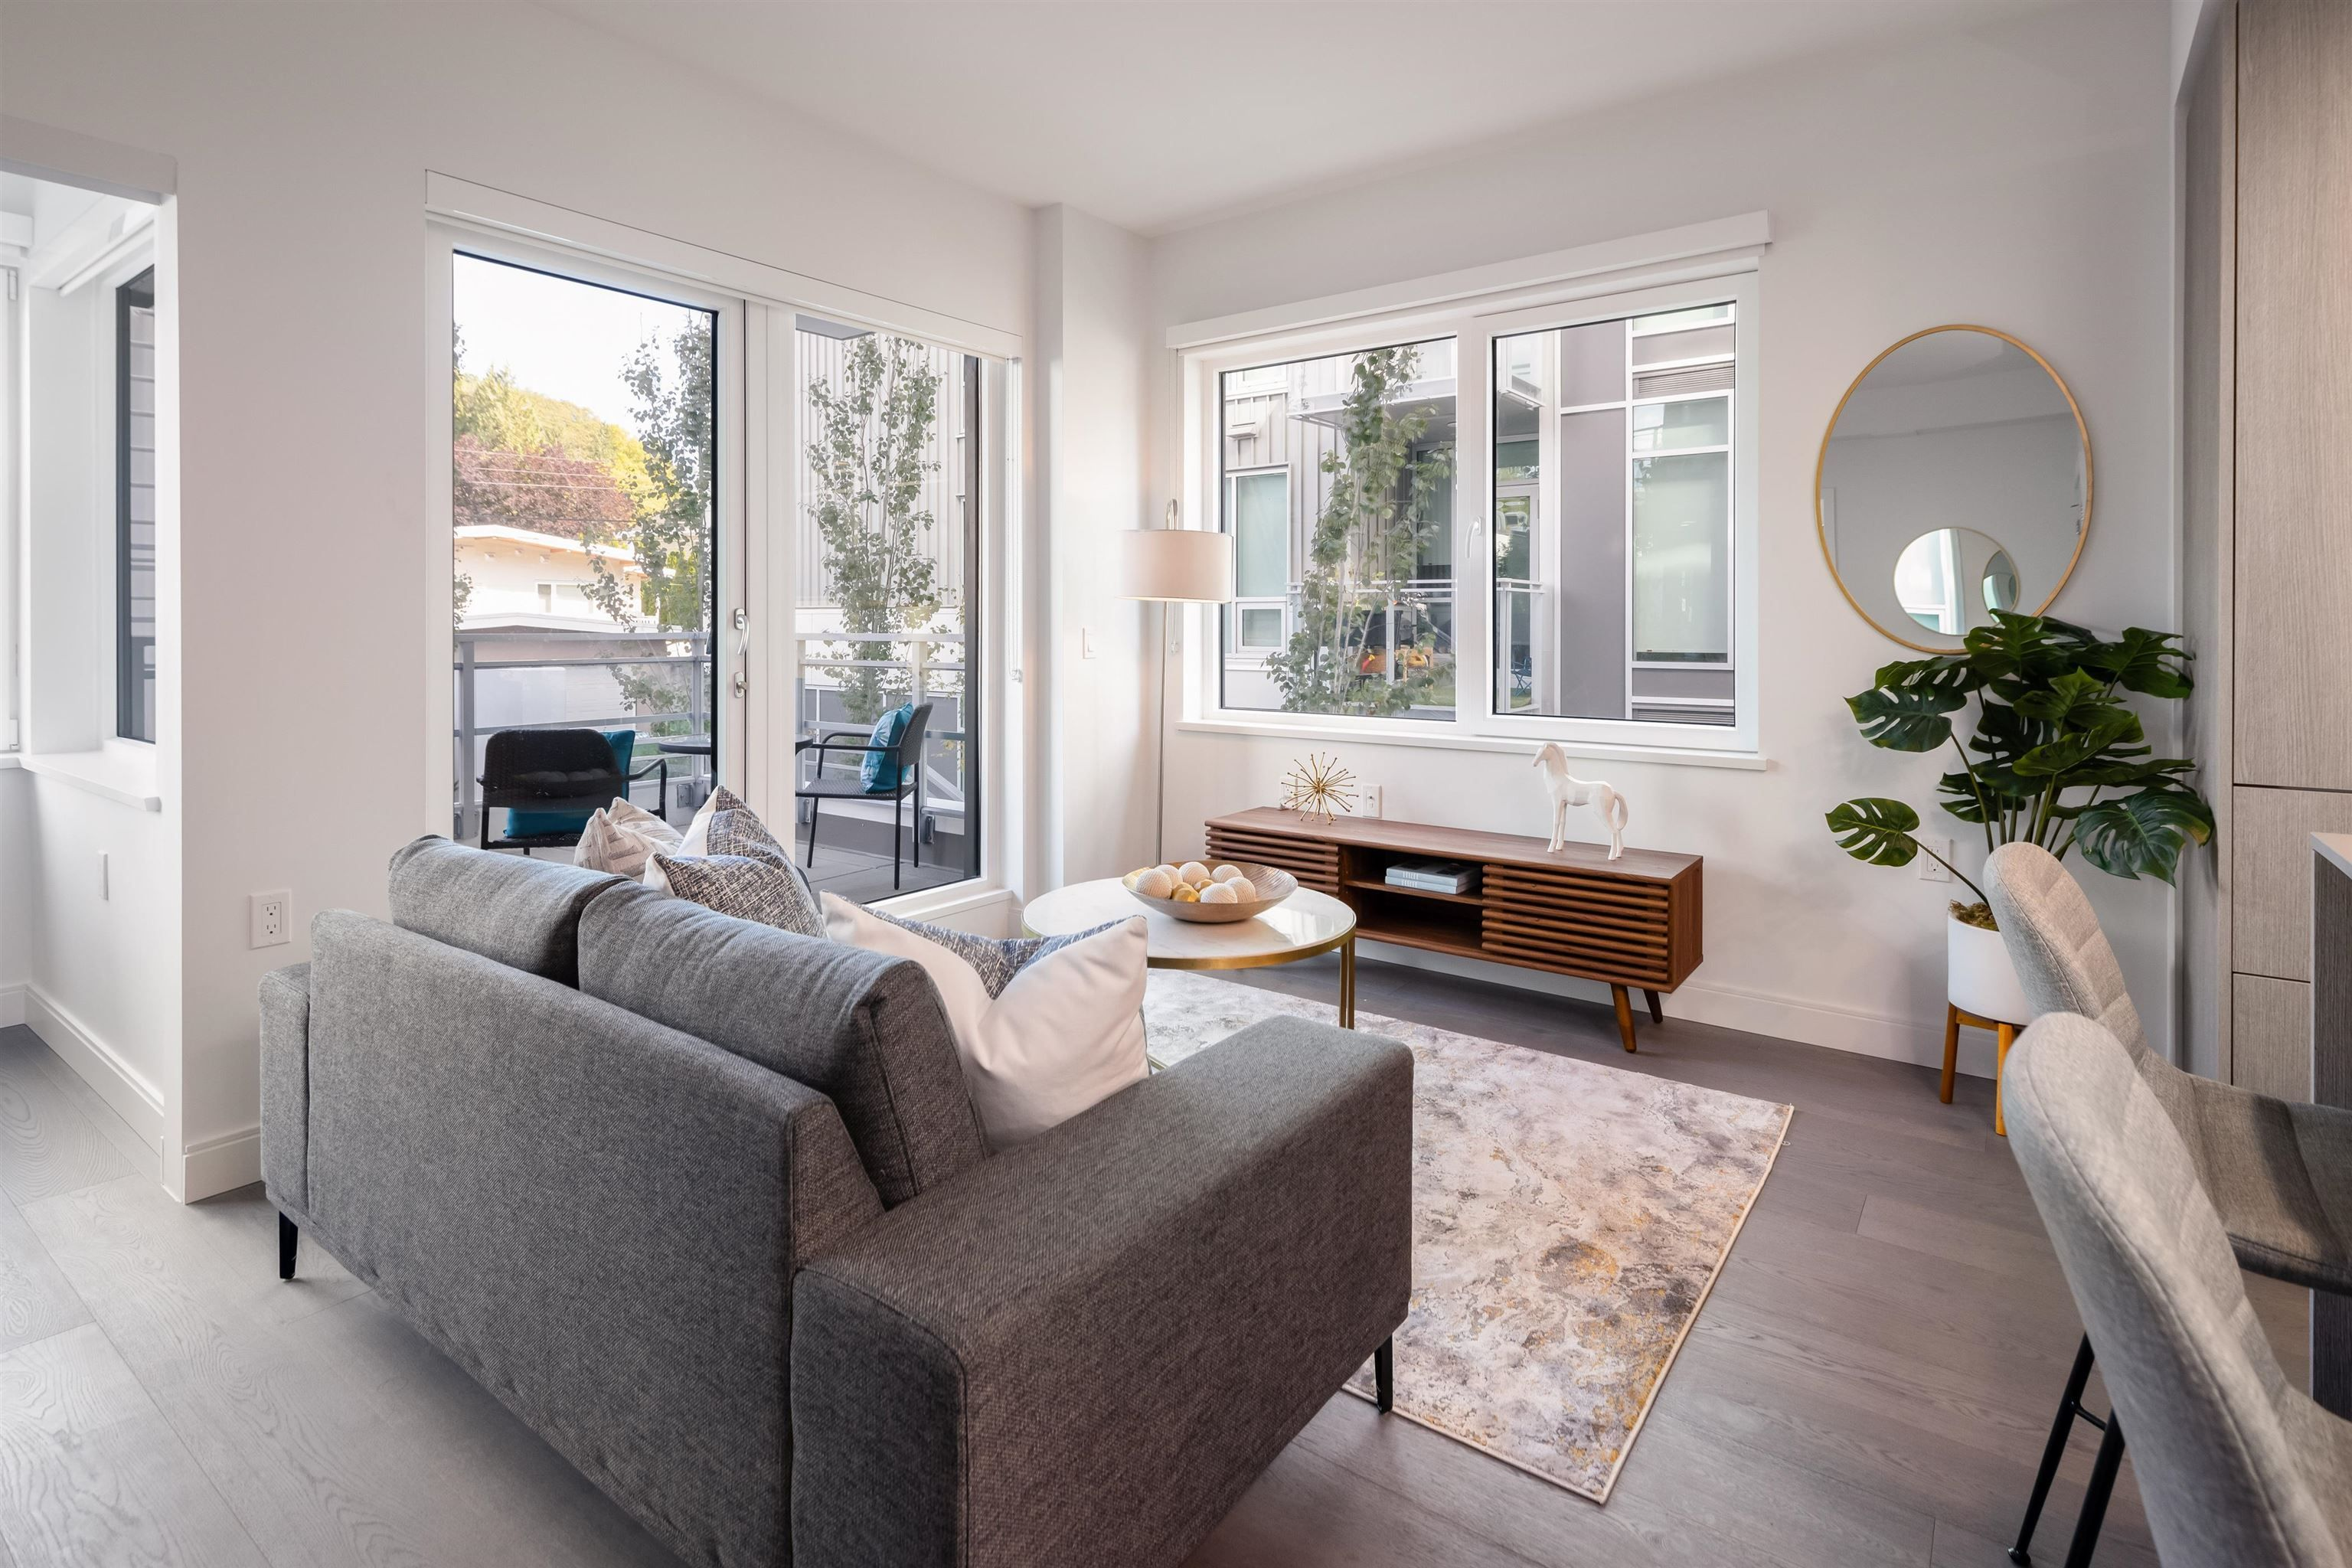 """Main Photo: 204 4932 CAMBIE Street in Vancouver: Fairview VW Condo for sale in """"PRIMROSE BY TRANSCA"""" (Vancouver West)  : MLS®# R2621383"""